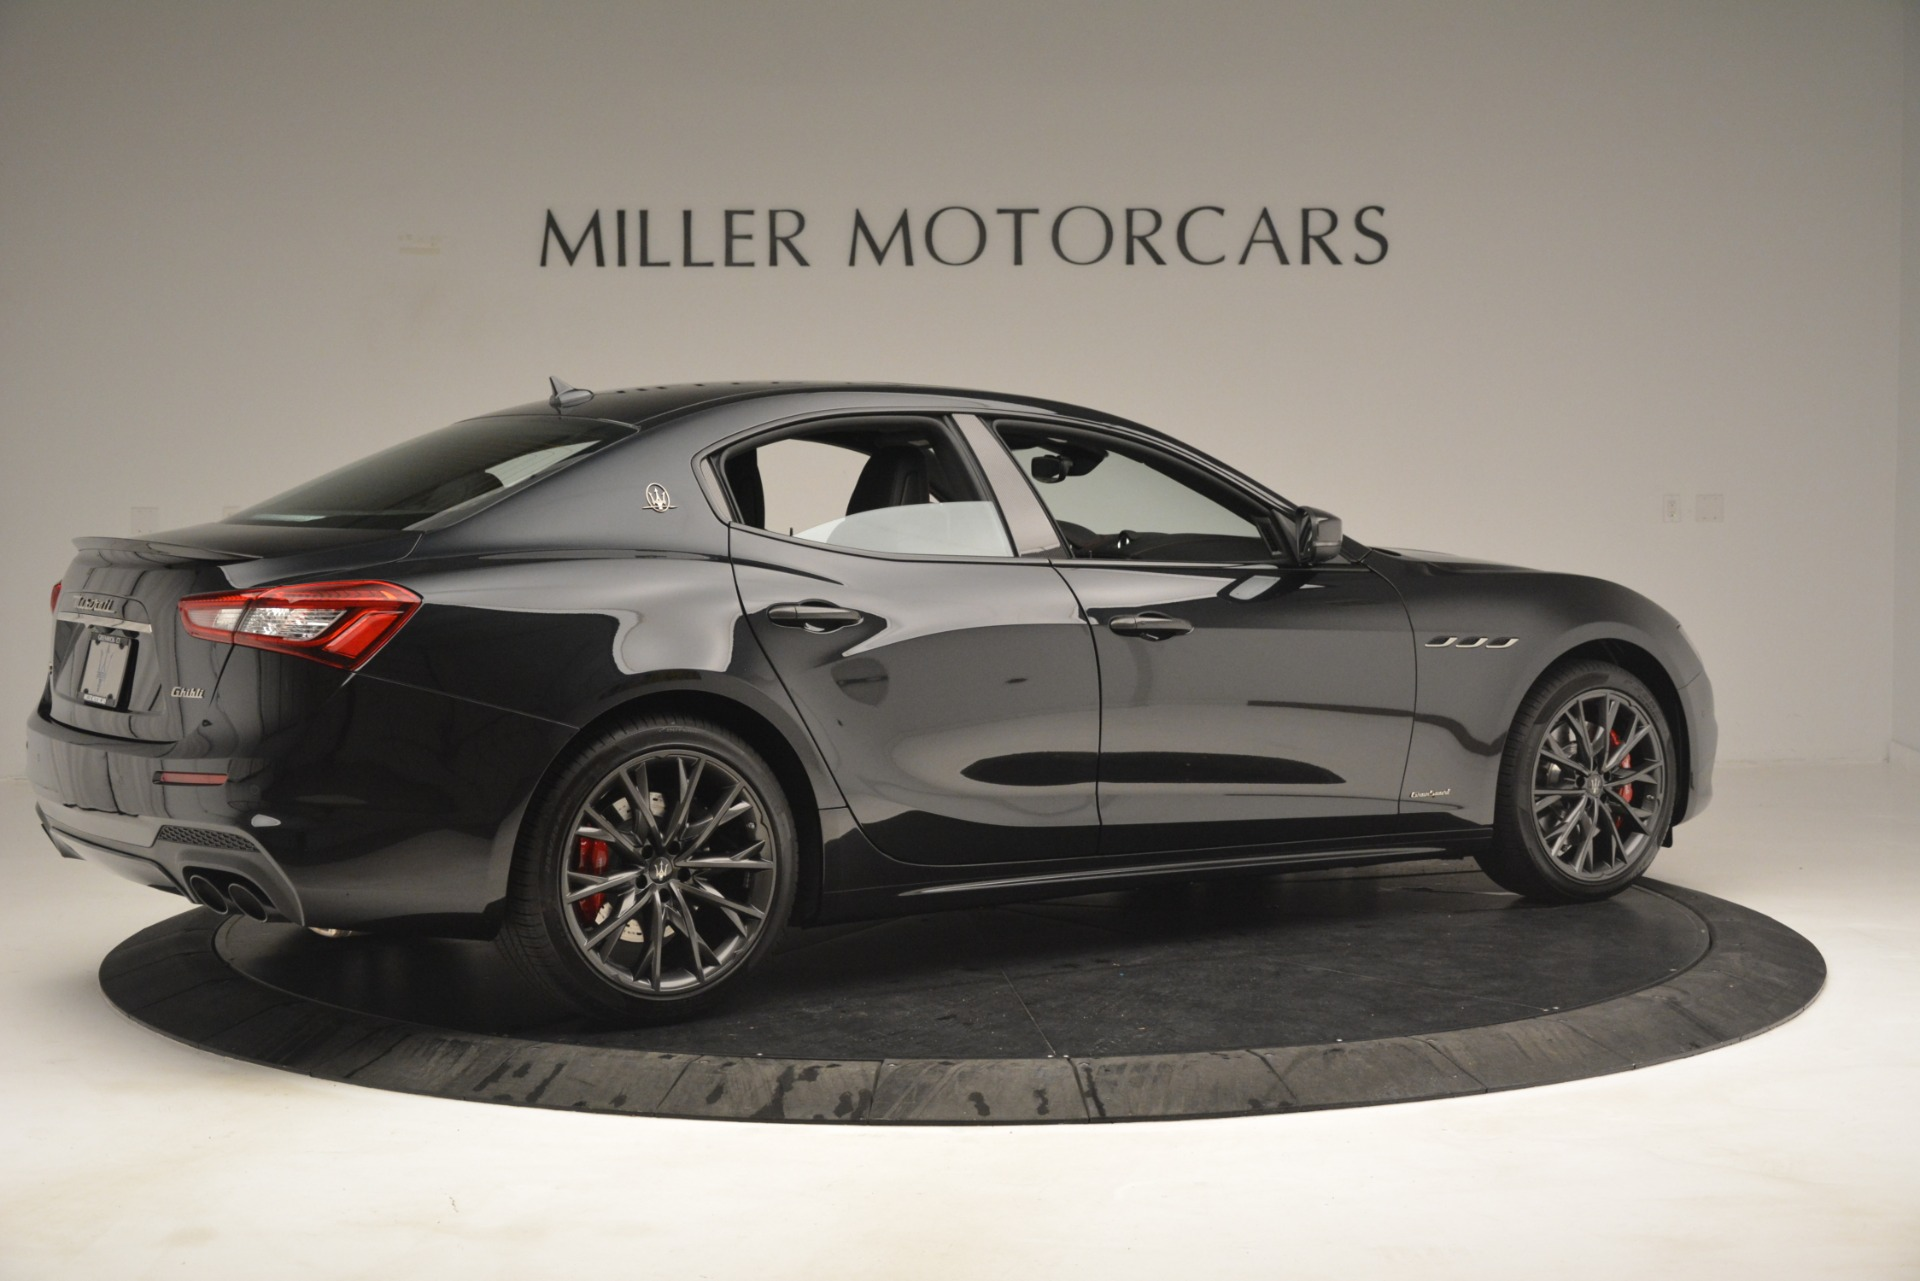 New 2019 Maserati Ghibli S Q4 GranSport For Sale In Westport, CT 2926_p8